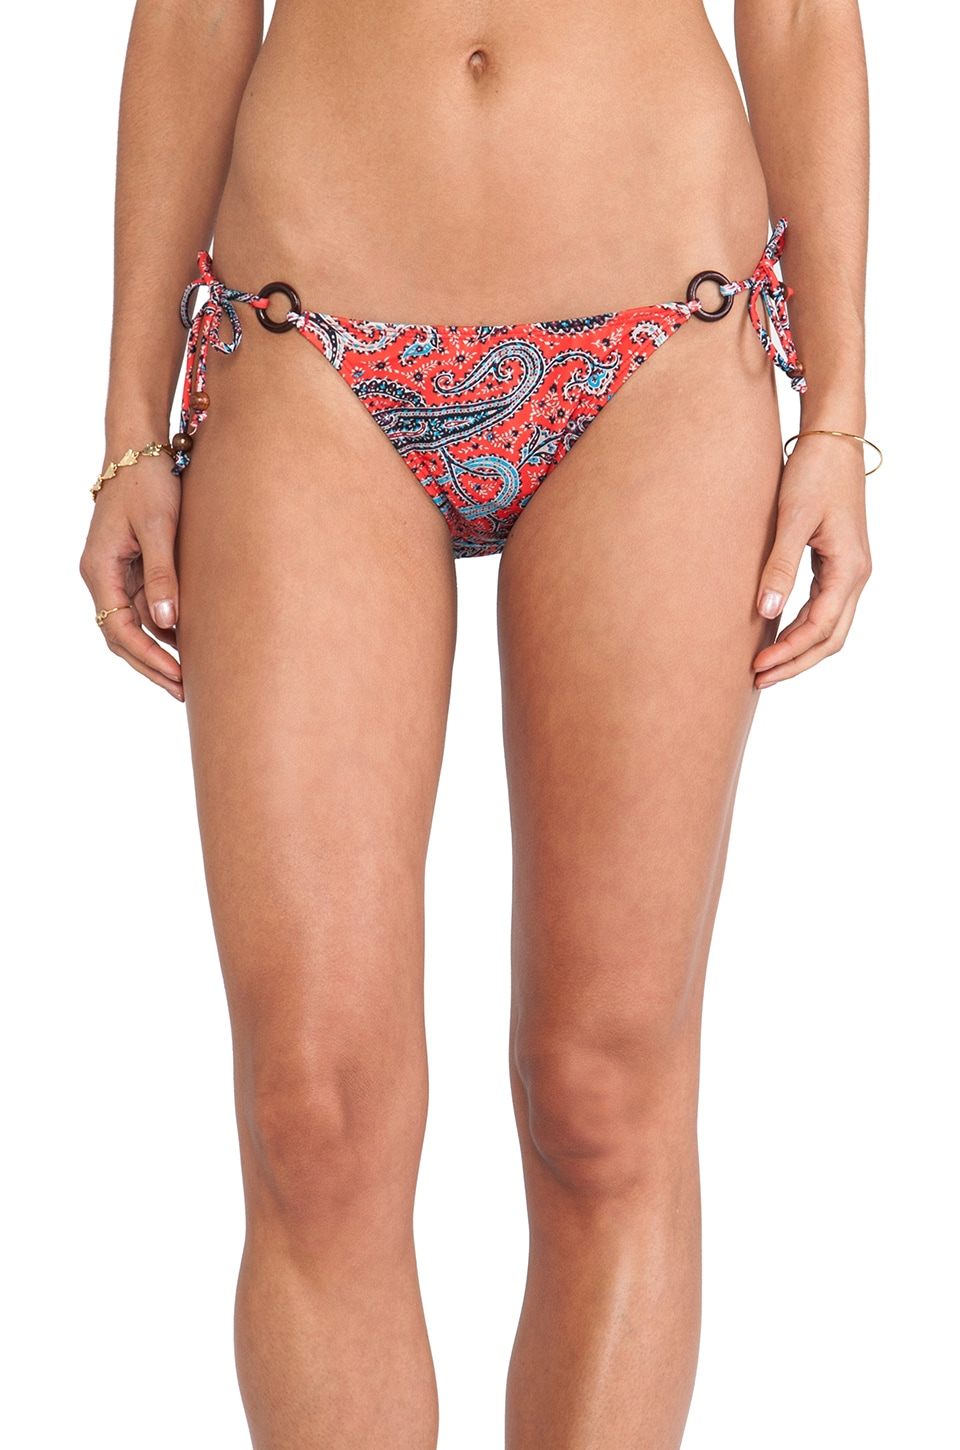 Shoshanna Ring String Bikini Bottom in Portland Paisley